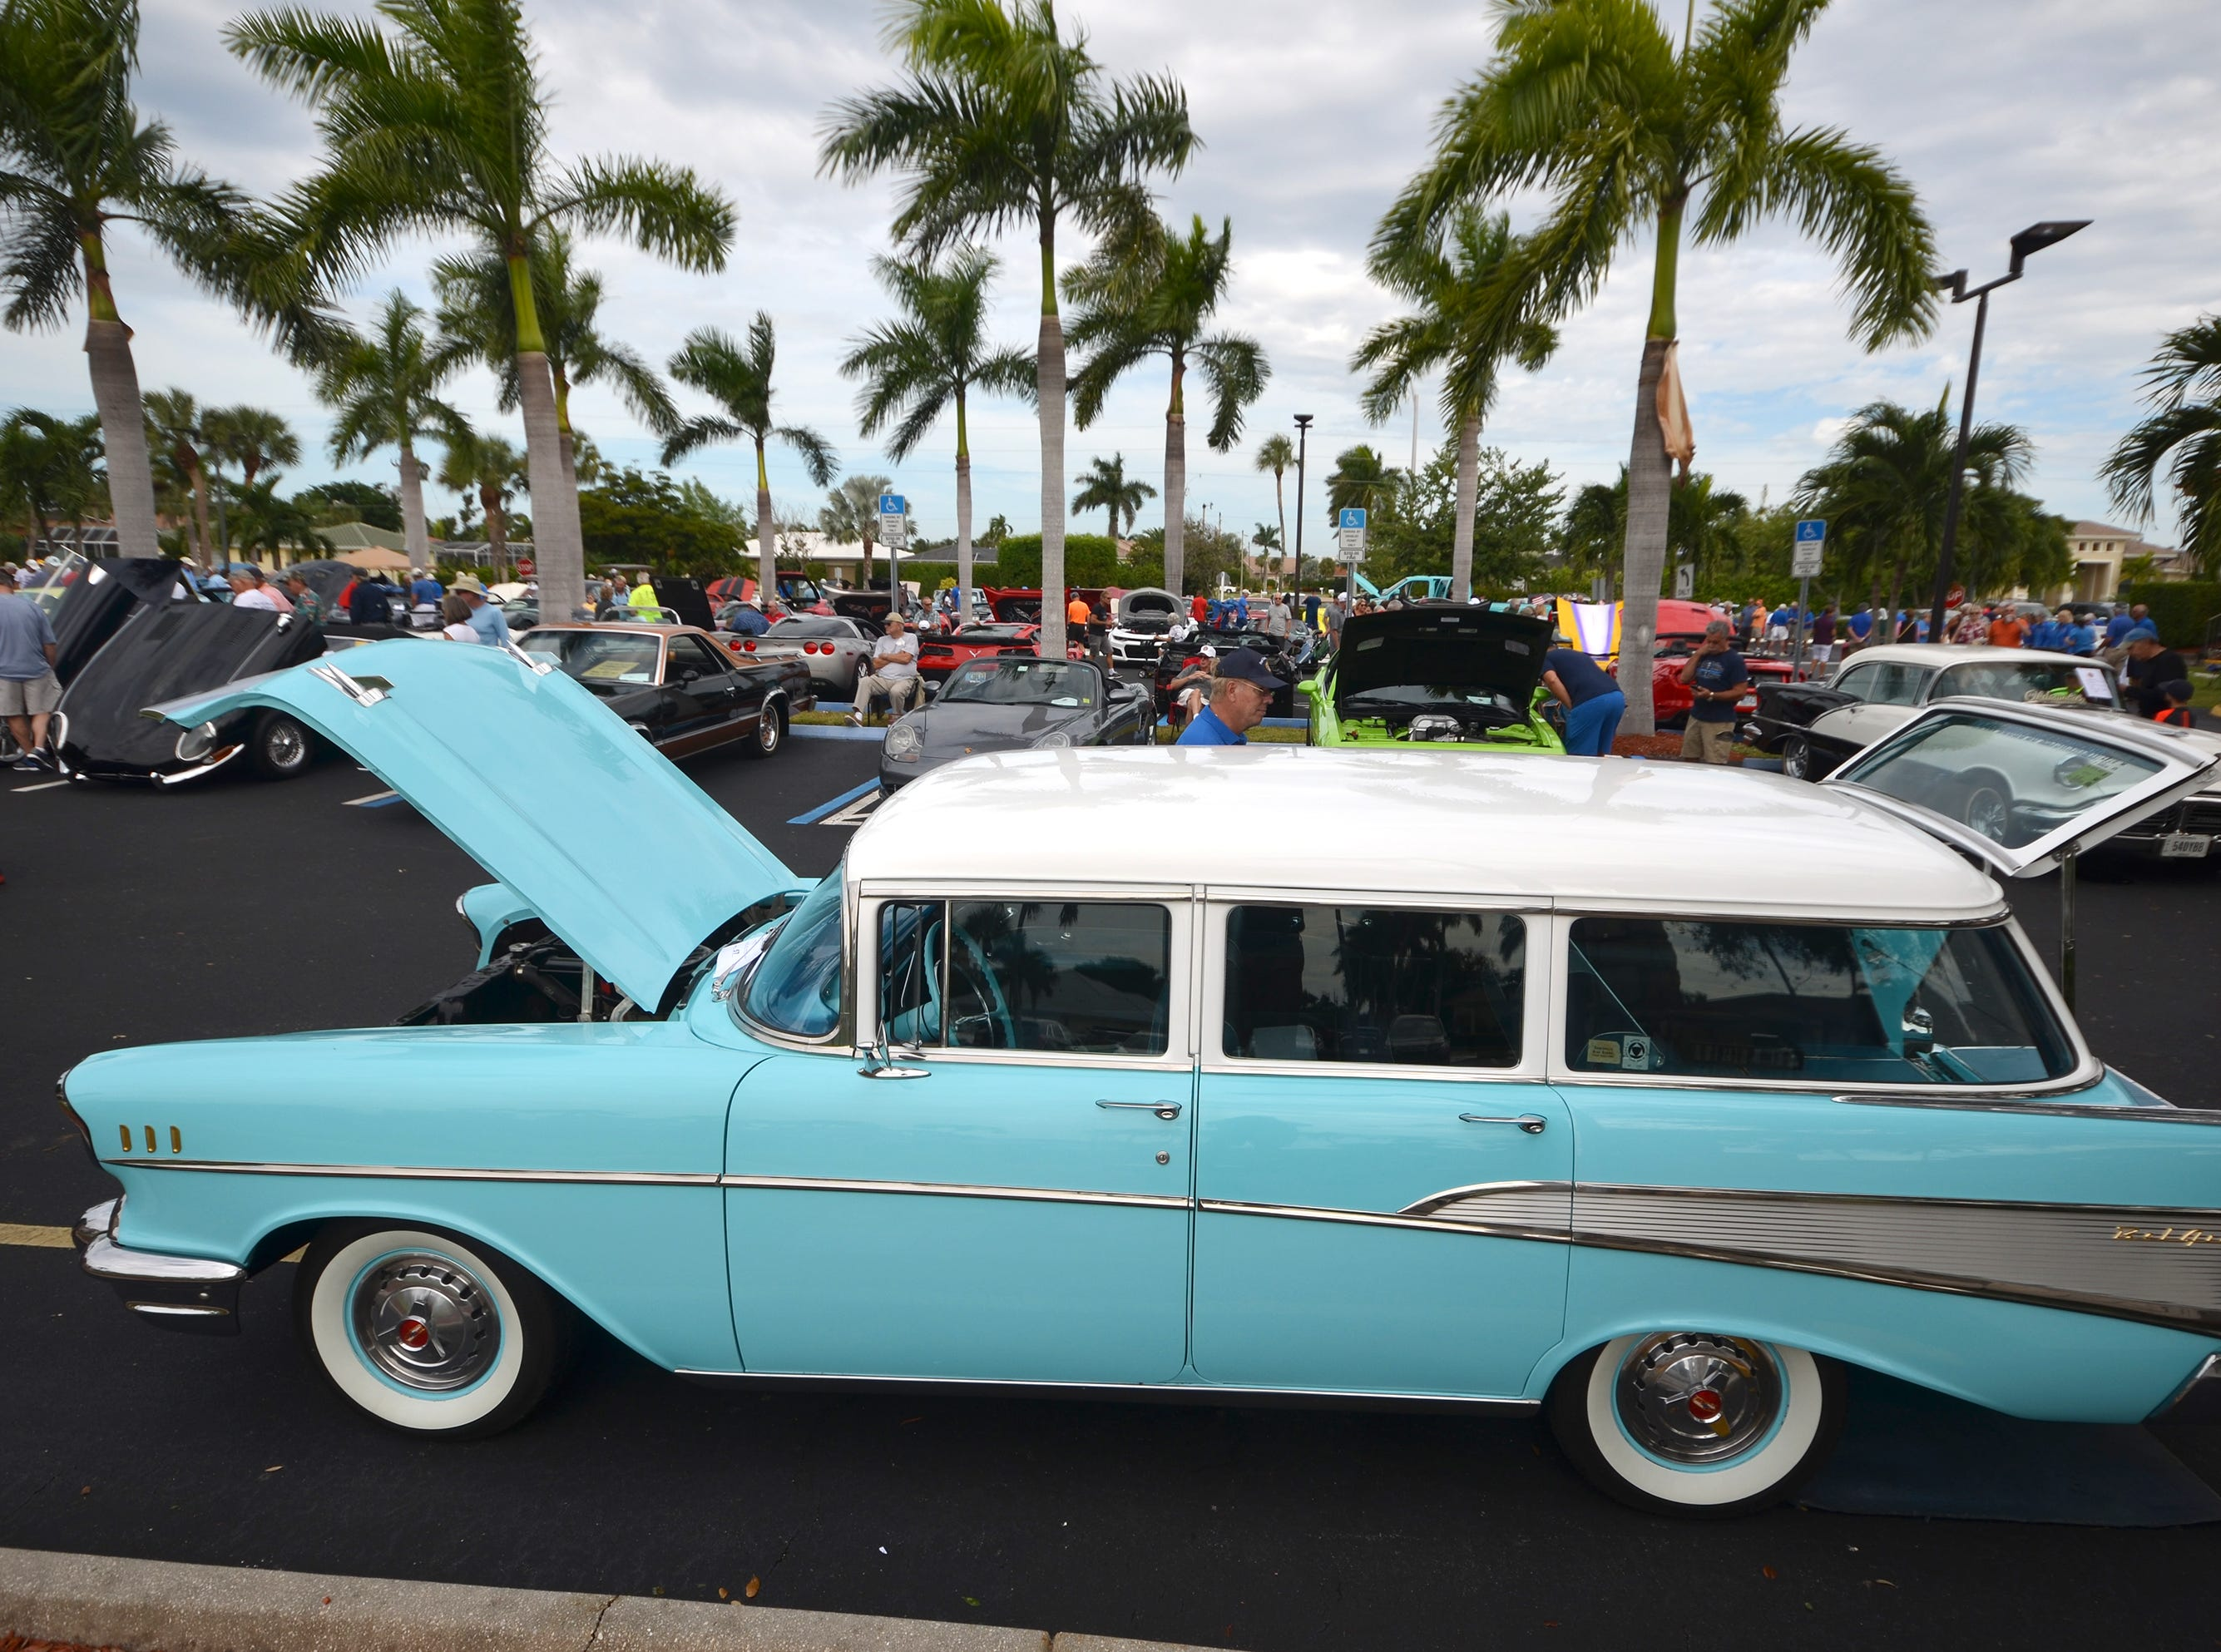 Chris Tighe's family has owned this '57 Bel Air since it was built. The Marco Island Knights of Columbus held their inaugural car show Saturday in the parking lot at San Marco Catholic Church.